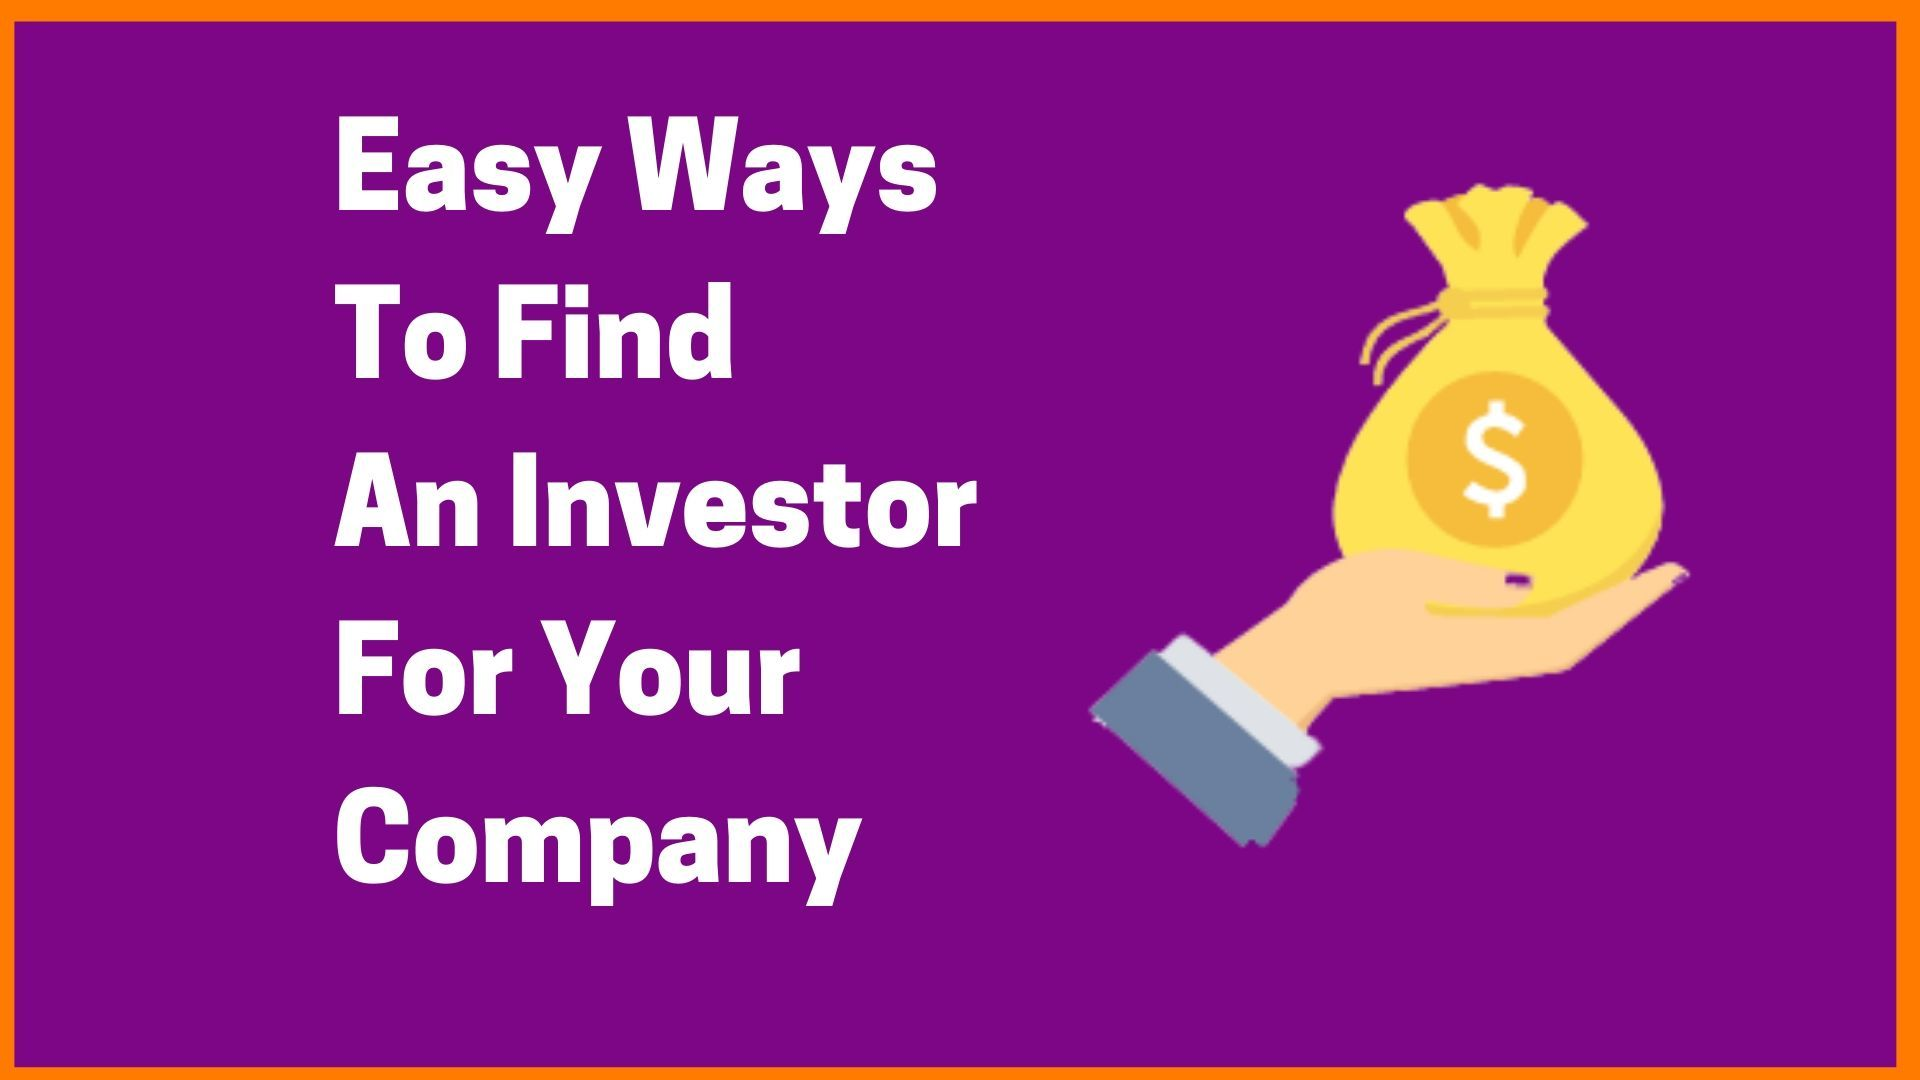 Easy Ways To Find An Investor For Your Company